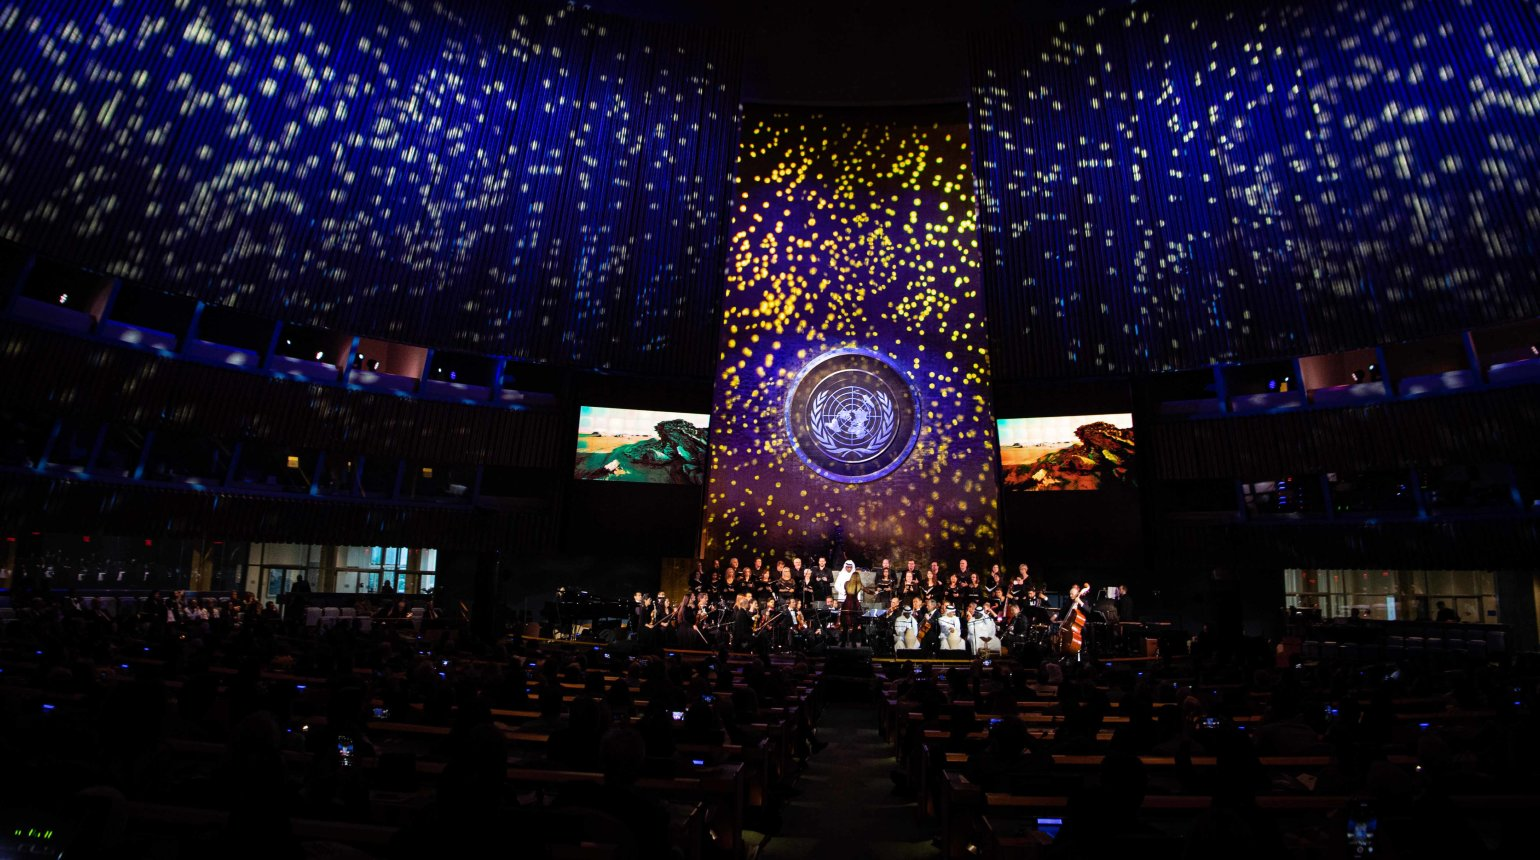 <p>Qatar Philharmonic Orchestra performed in front of an international audience in the United Nations General Assembly Hall as part of a celebration of UN Day 2019.</p>